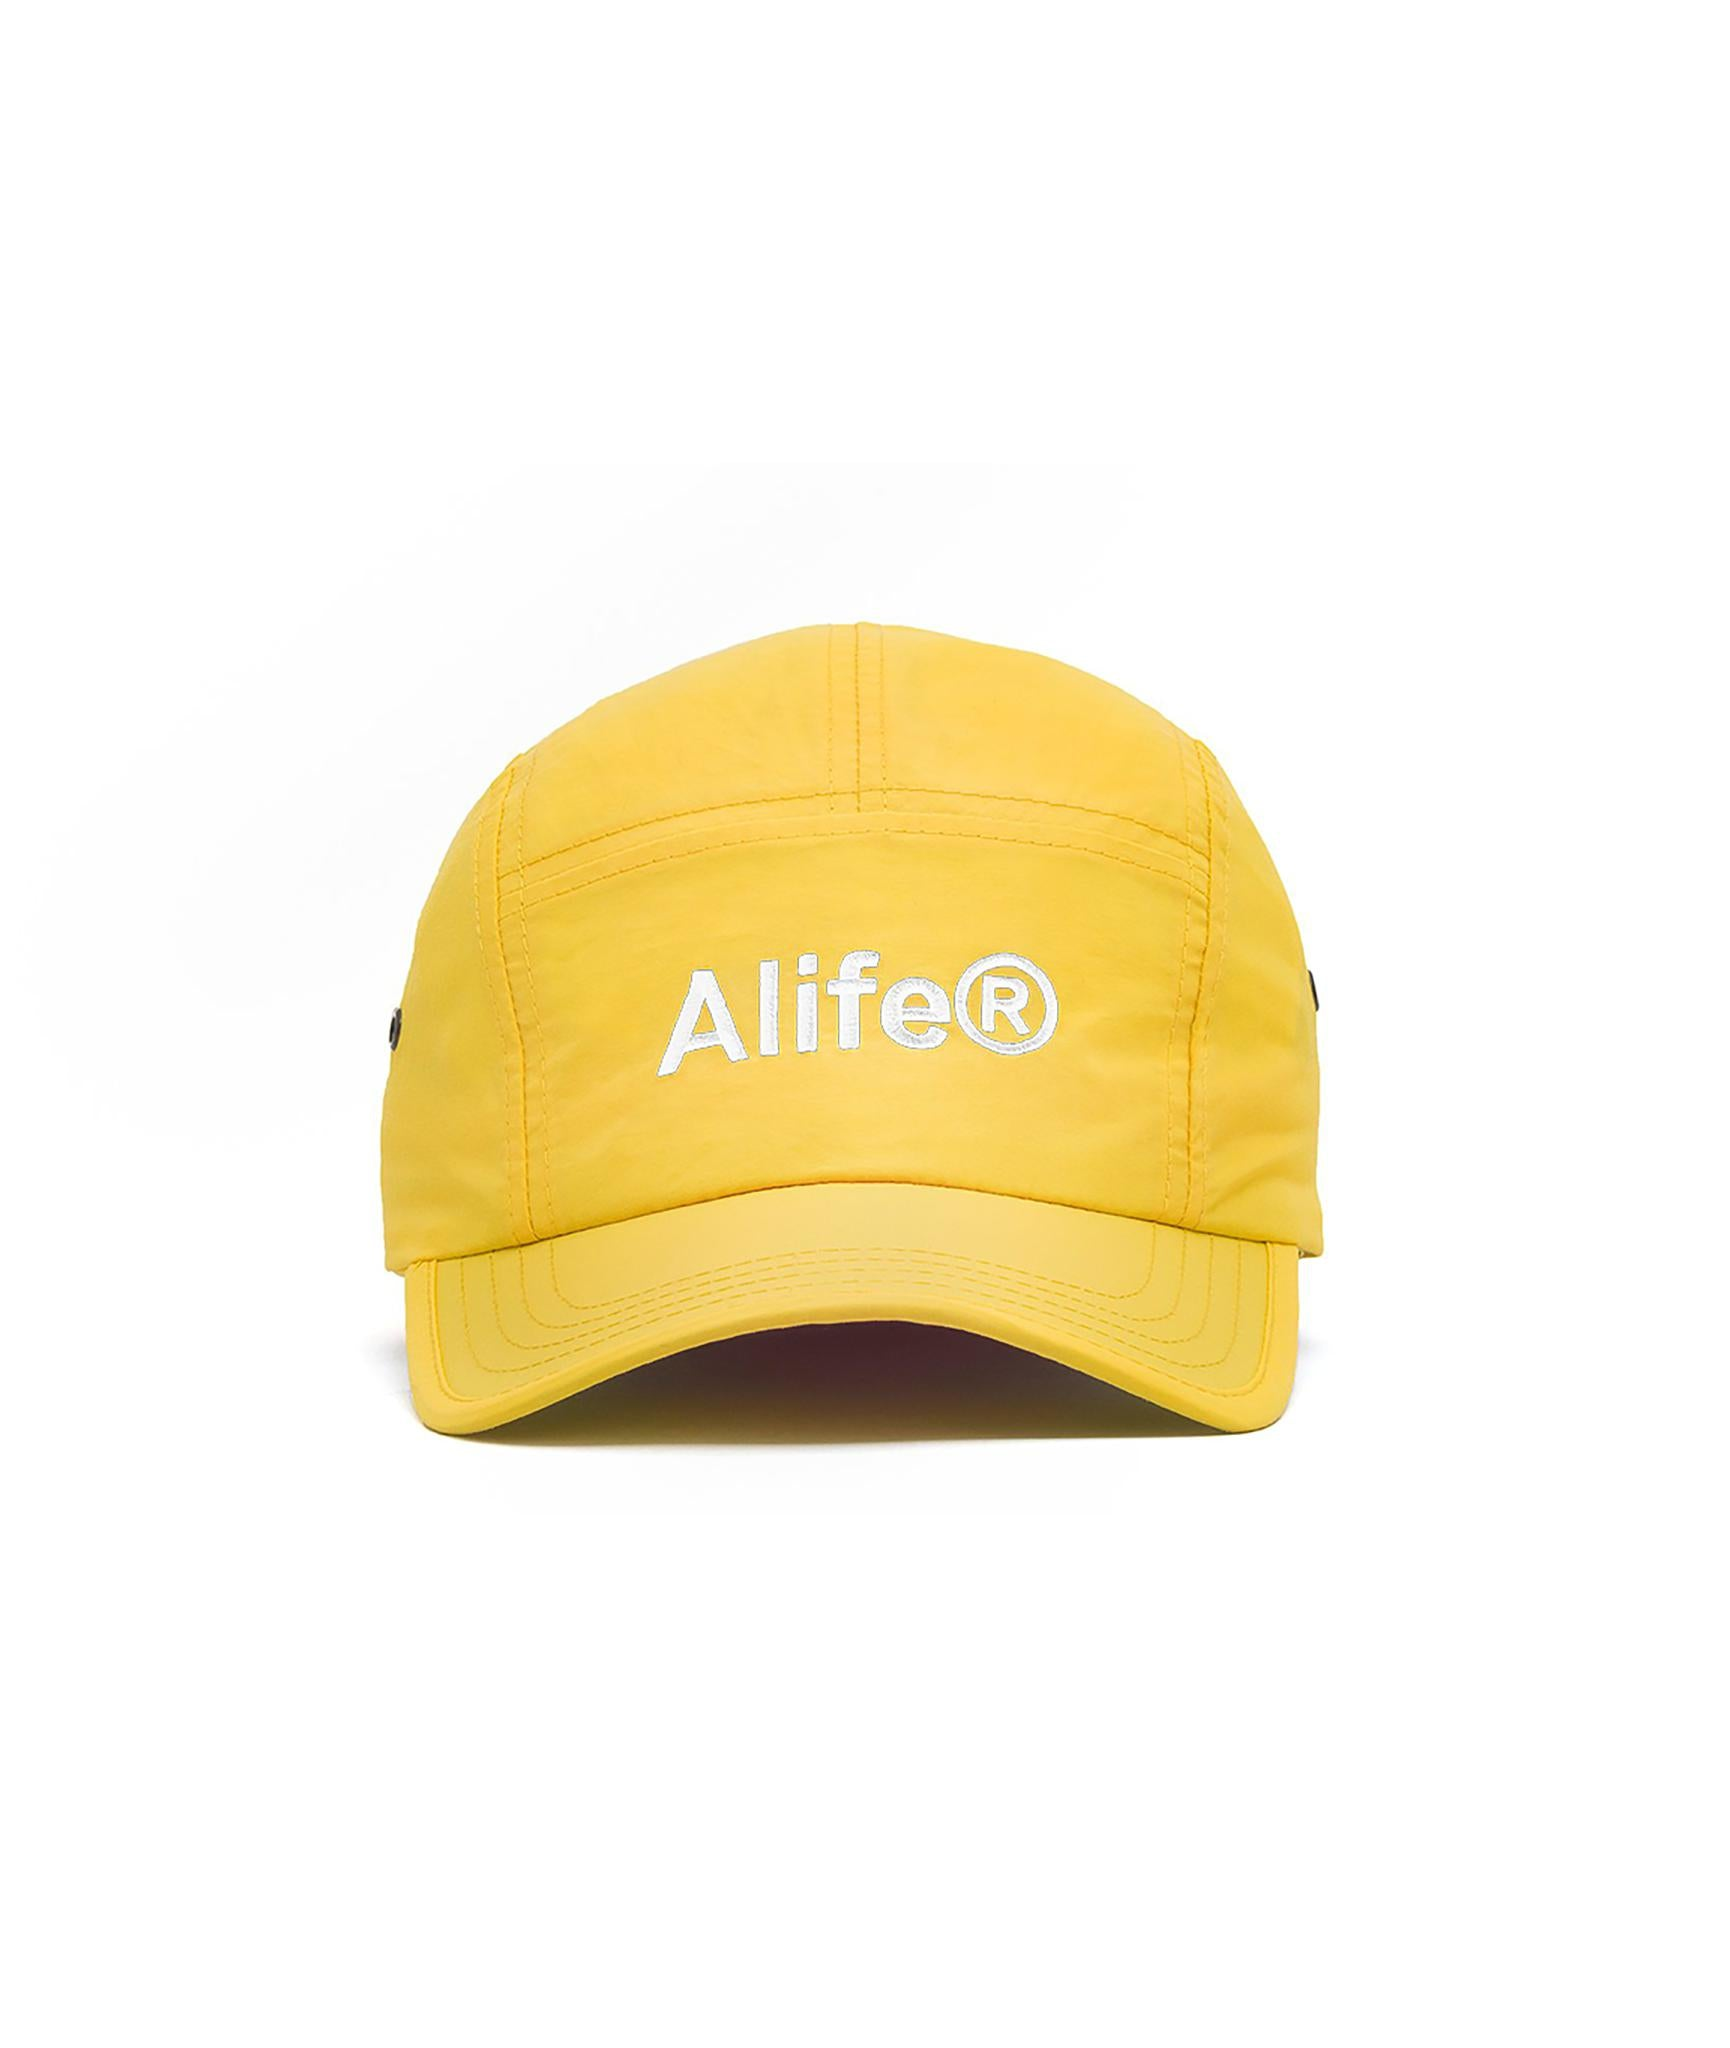 Alife Nylon 5-Panel Hat - Yellow